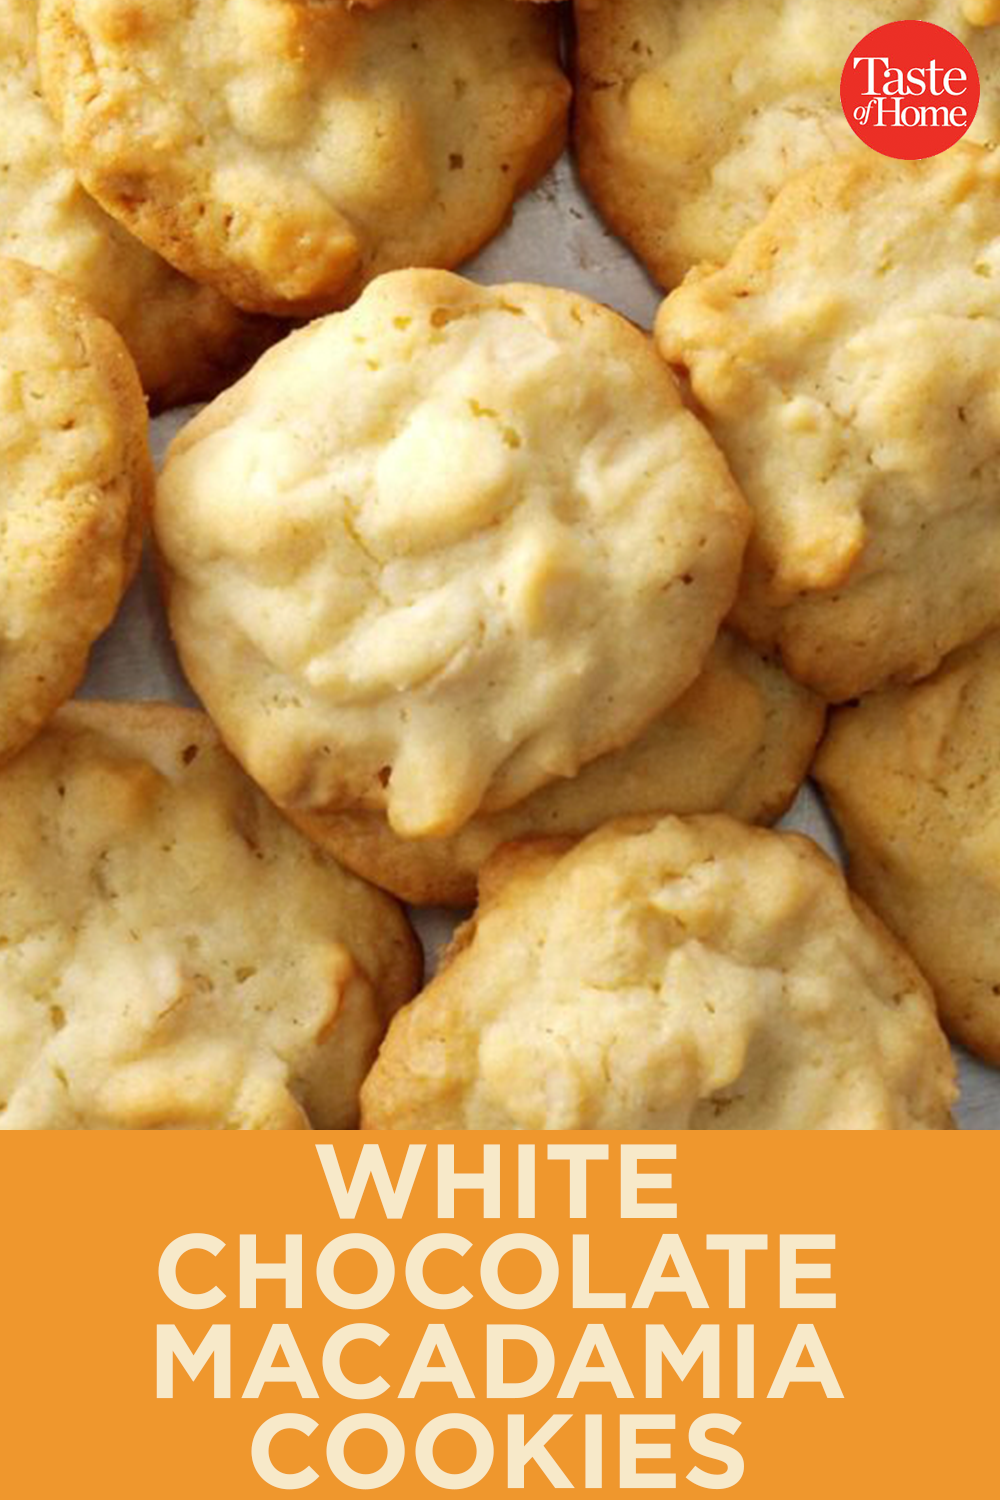 White Chocolate Macadamia Cookies - #Chocolate #Cookies #Macadamia #white #nikolausbacken